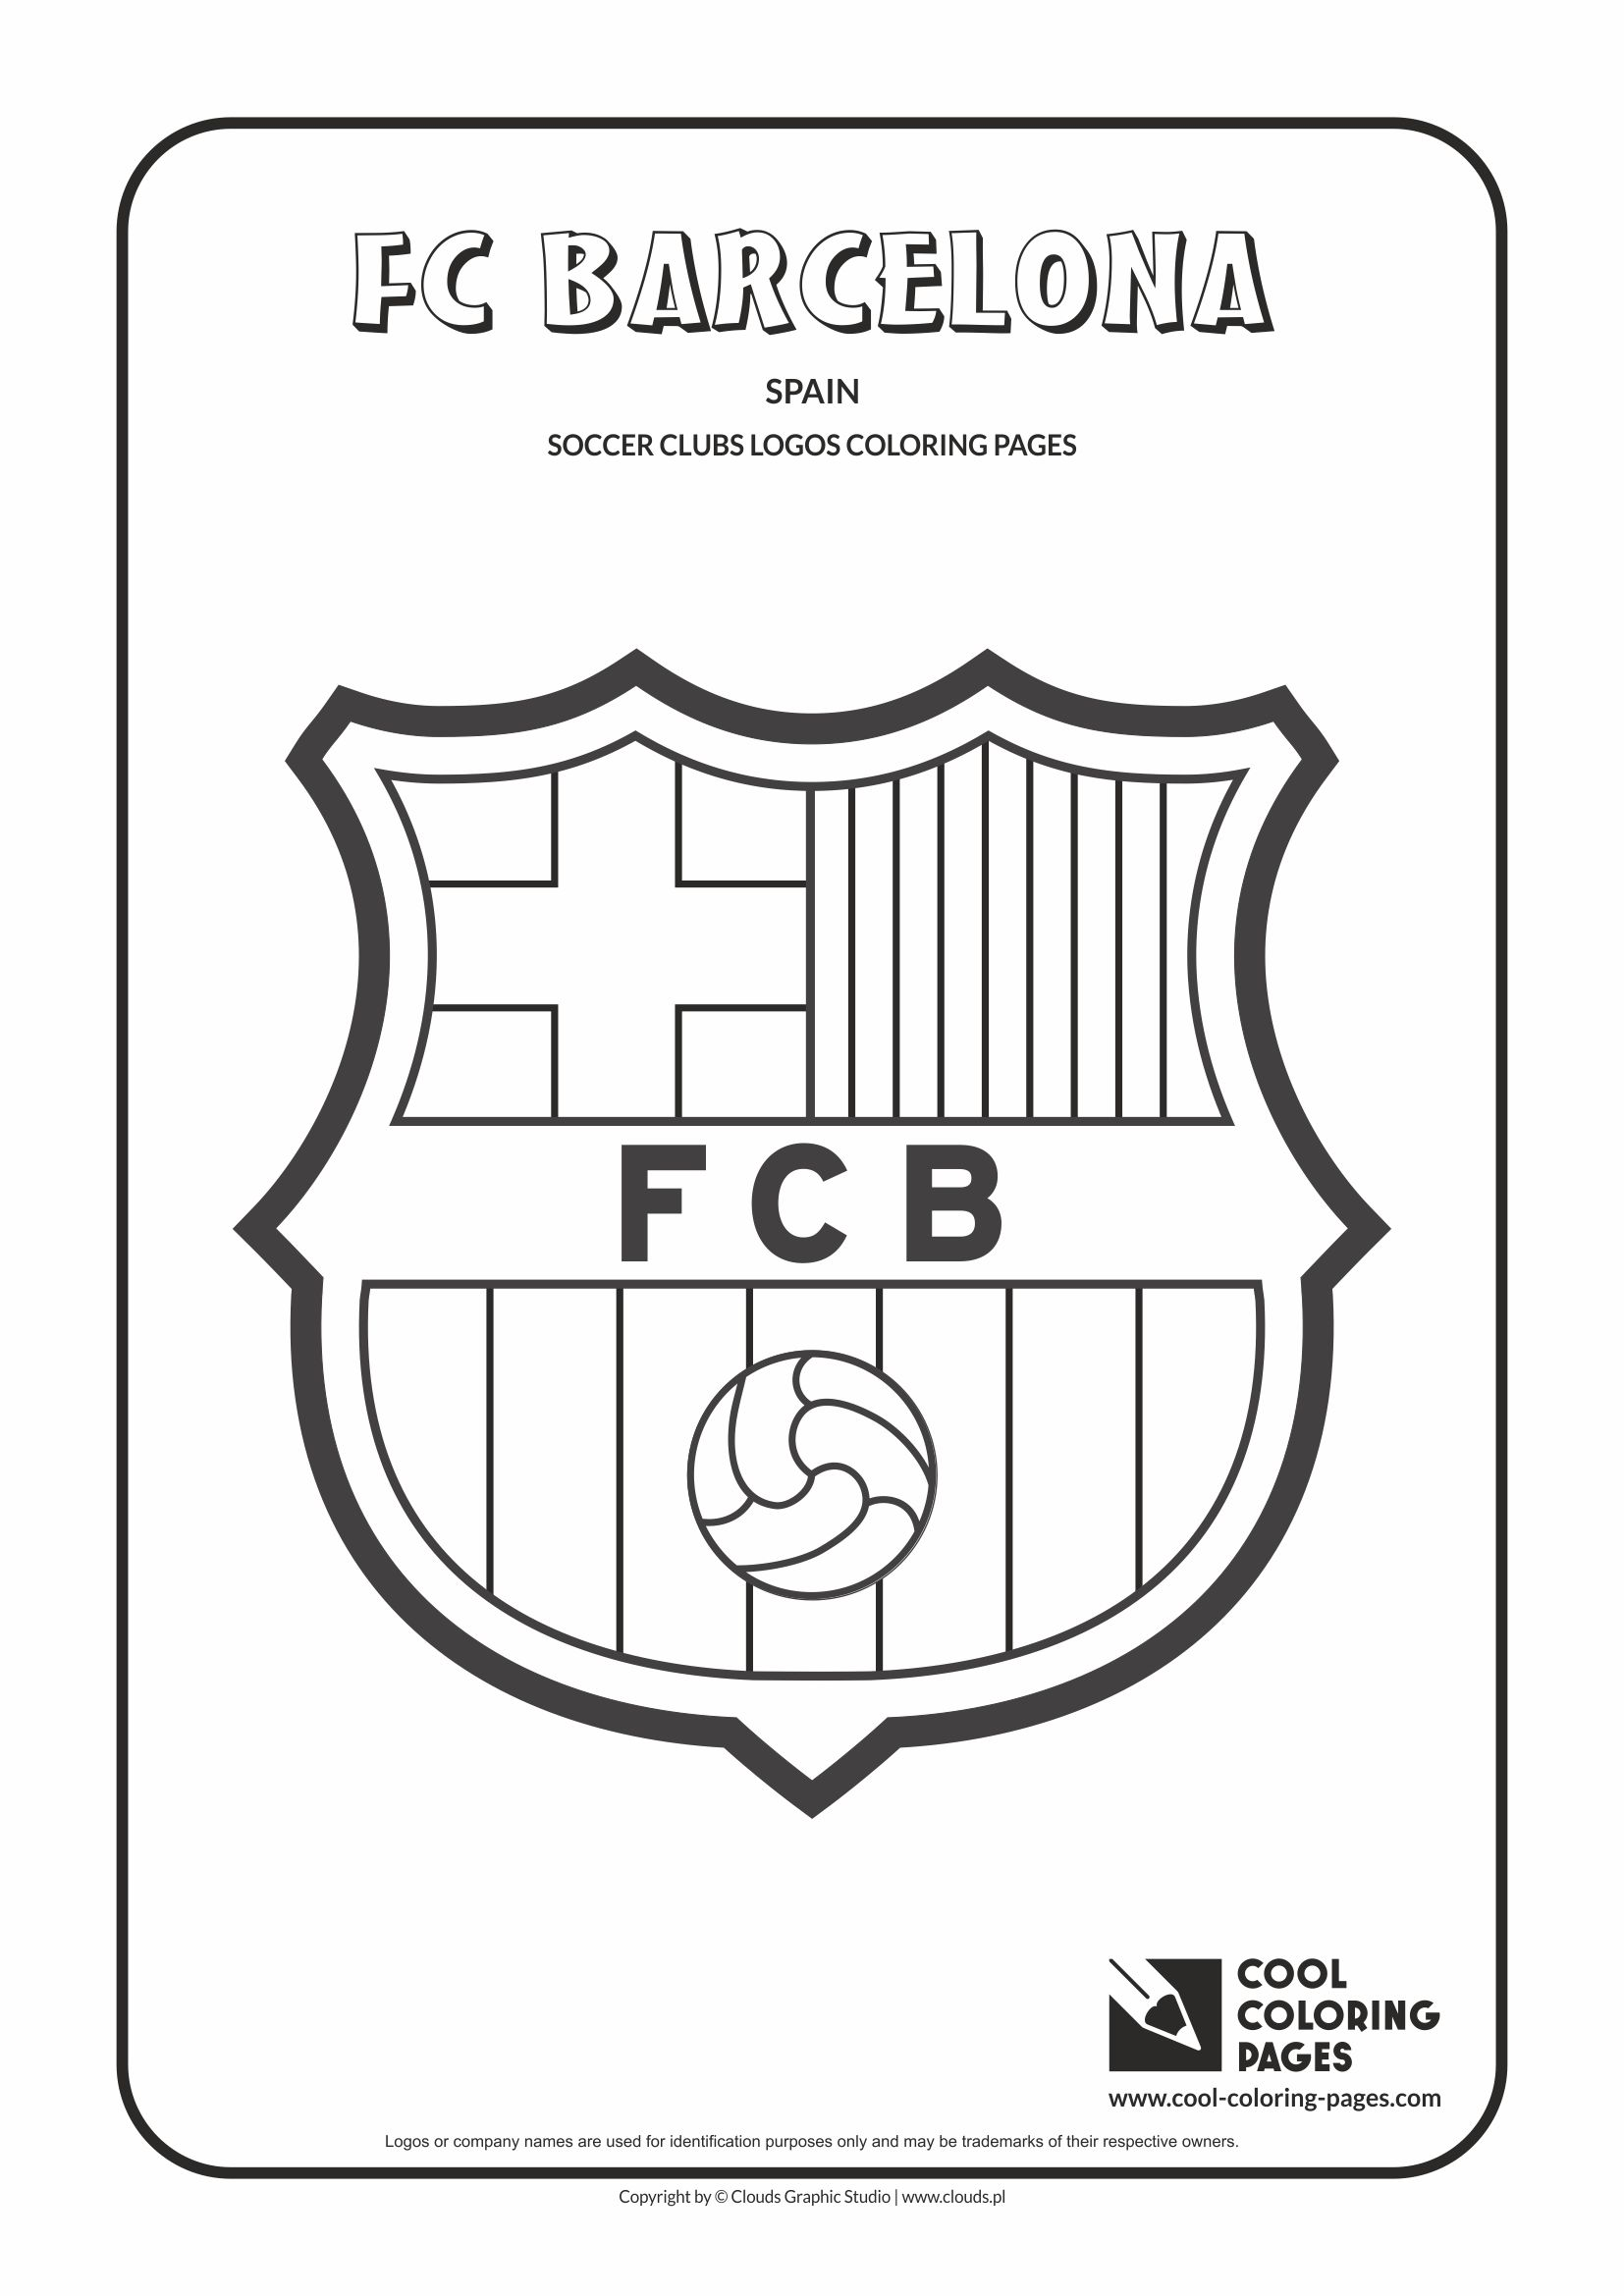 cool coloring pages fc barcelona logo coloring page cool coloring pages free educational coloring pages and activities for kids cool coloring pages fc barcelona logo coloring page cool coloring pages free educational coloring pages and activities for kids